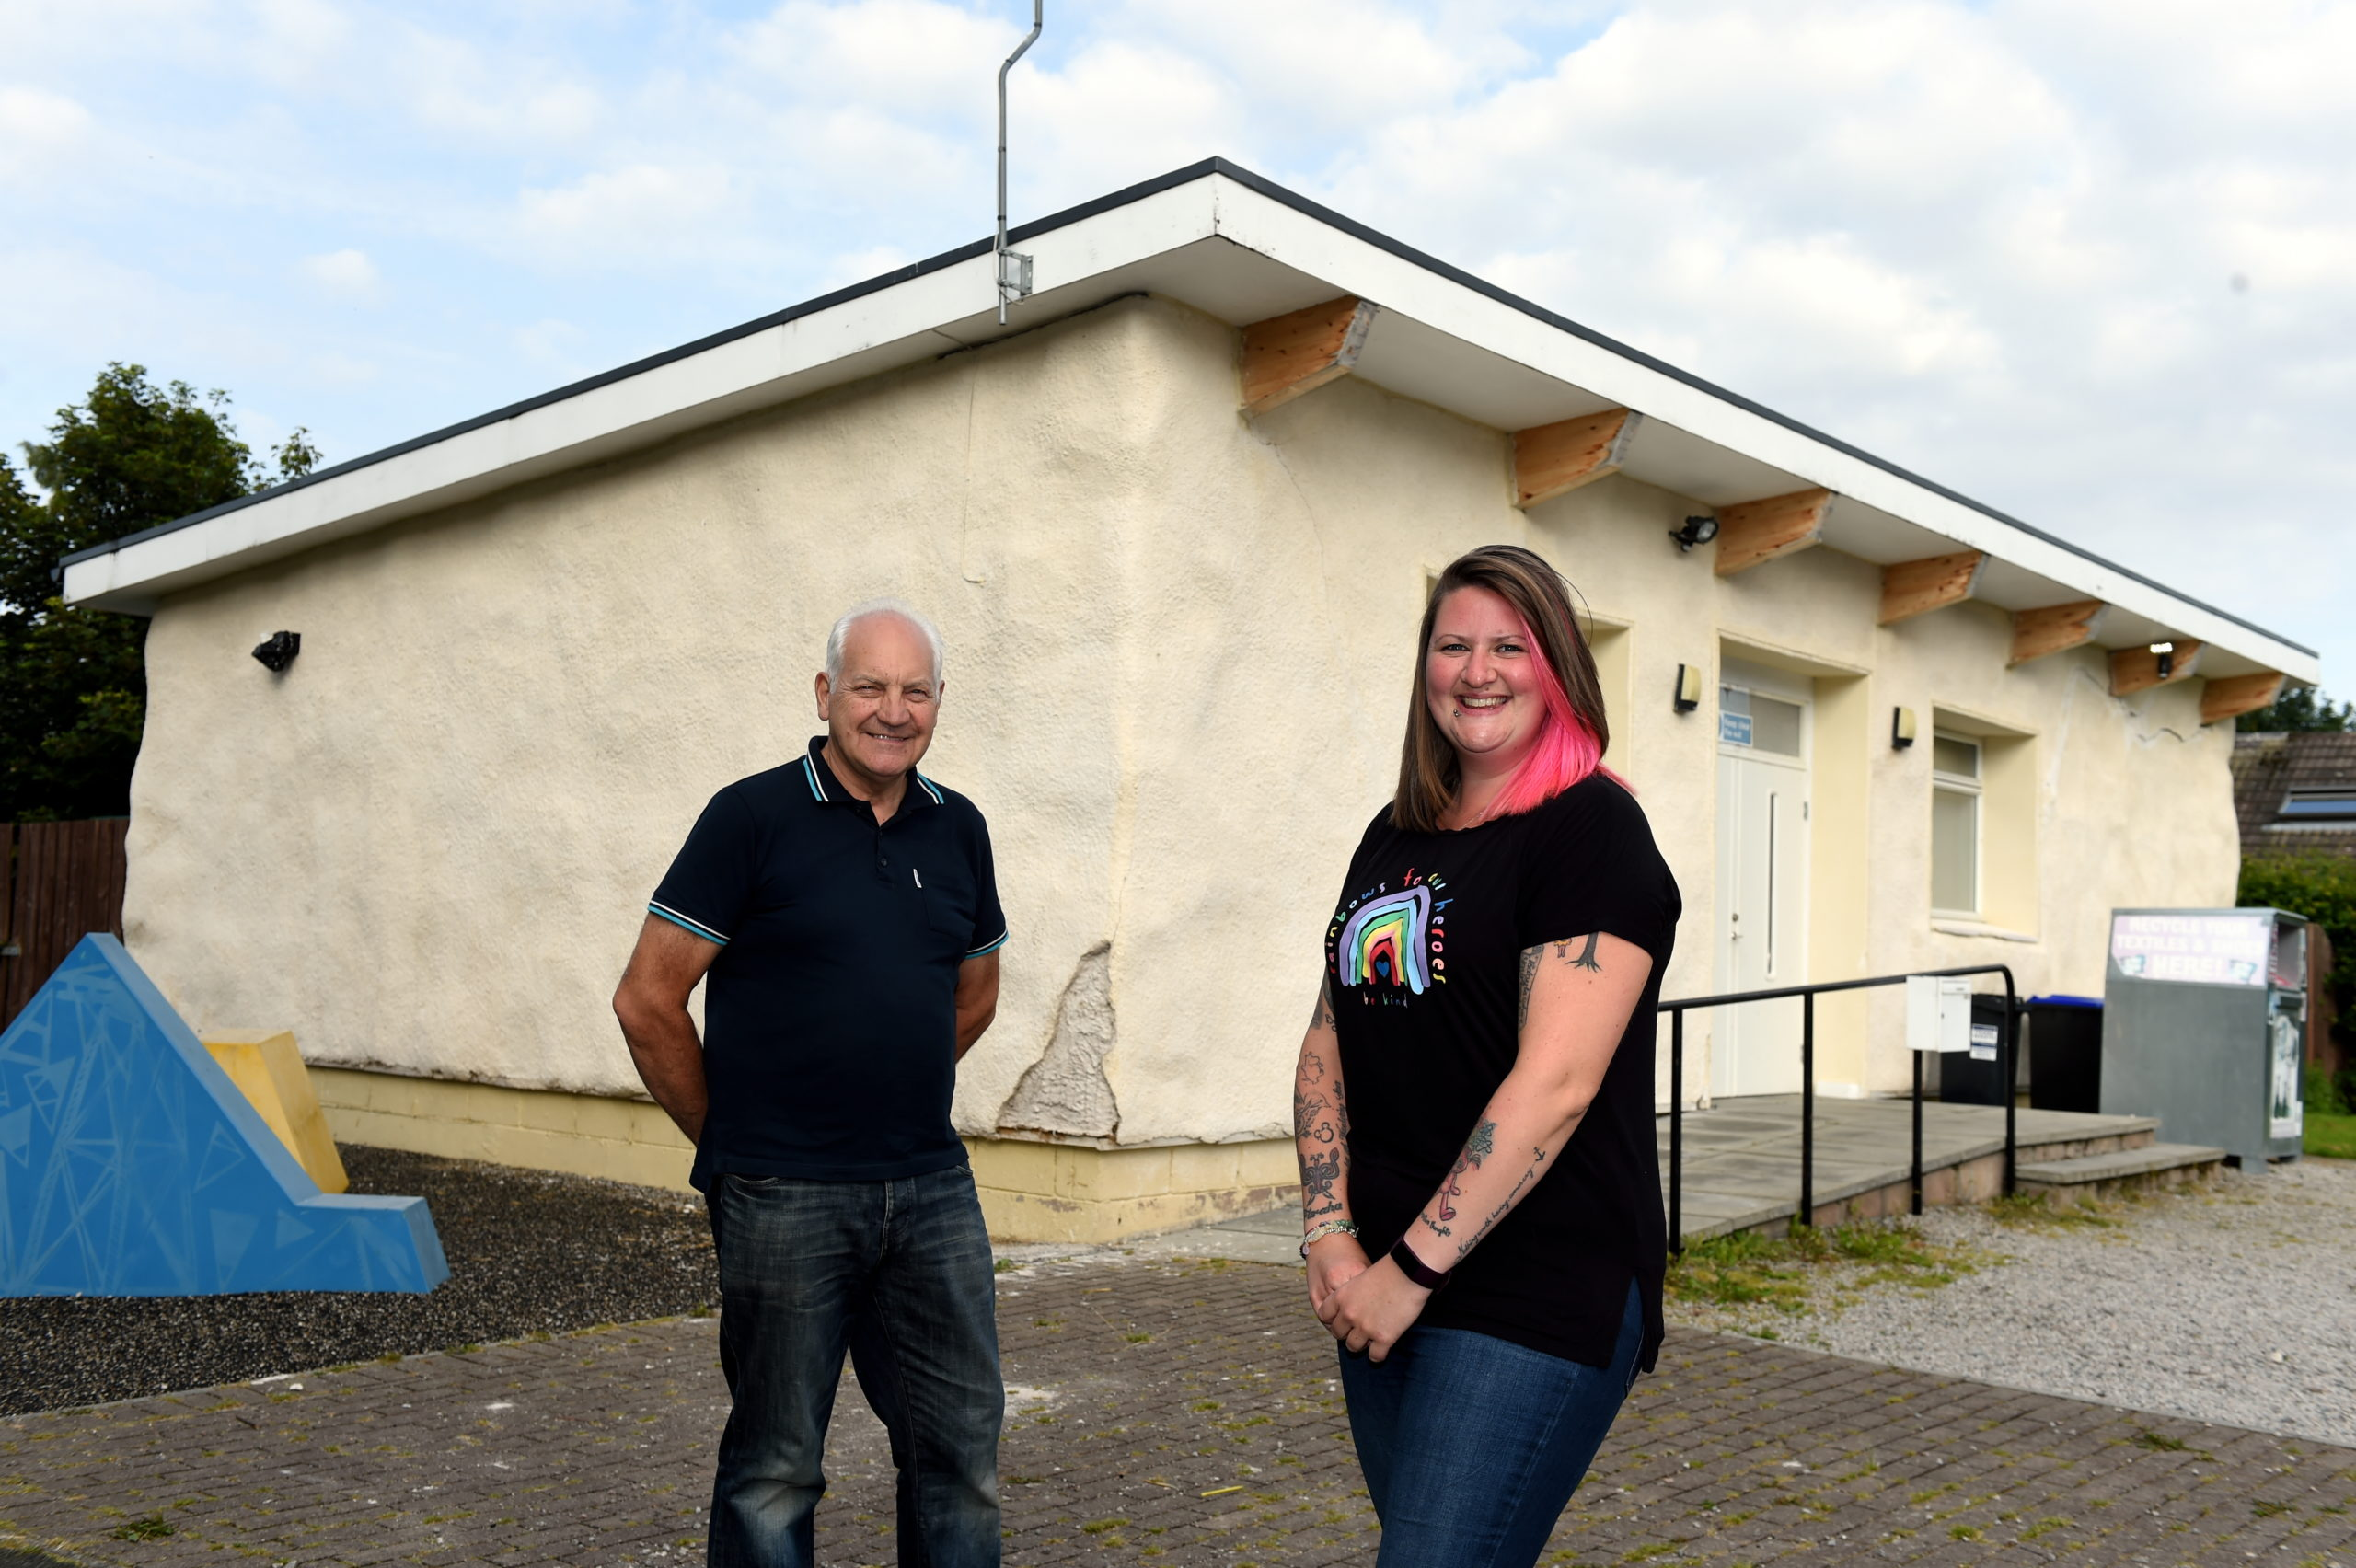 CR0022992 The Bothie youth club in Kintore was vandalised last month. The repairs cost £200, but a community appeal brought in £700. Picture of Brian Johnstone (chairman of Action Kintore) and youth worker Rachel Lewis.   Picture by Kenny Elrick     10/08/2020